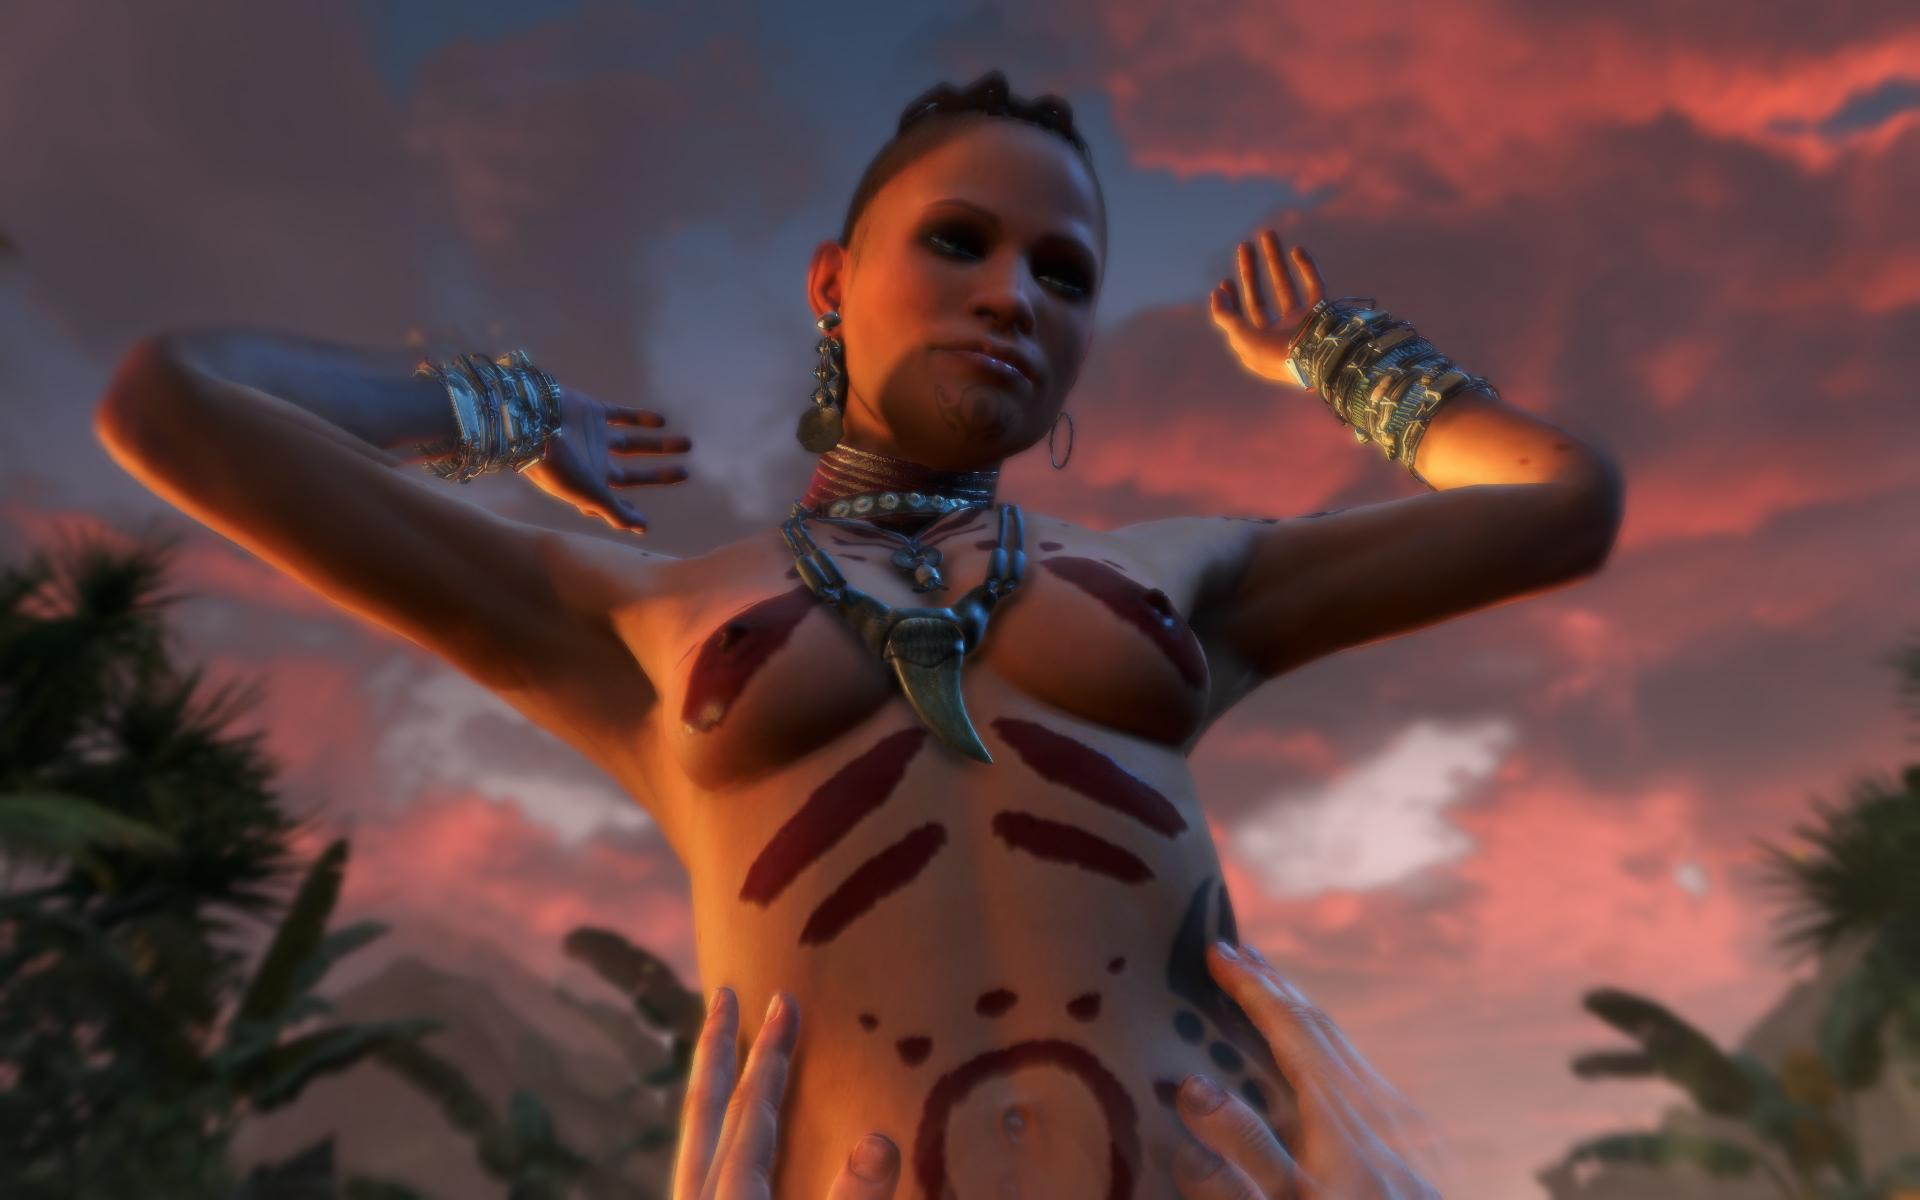 Download nude skins for far cry pron pics